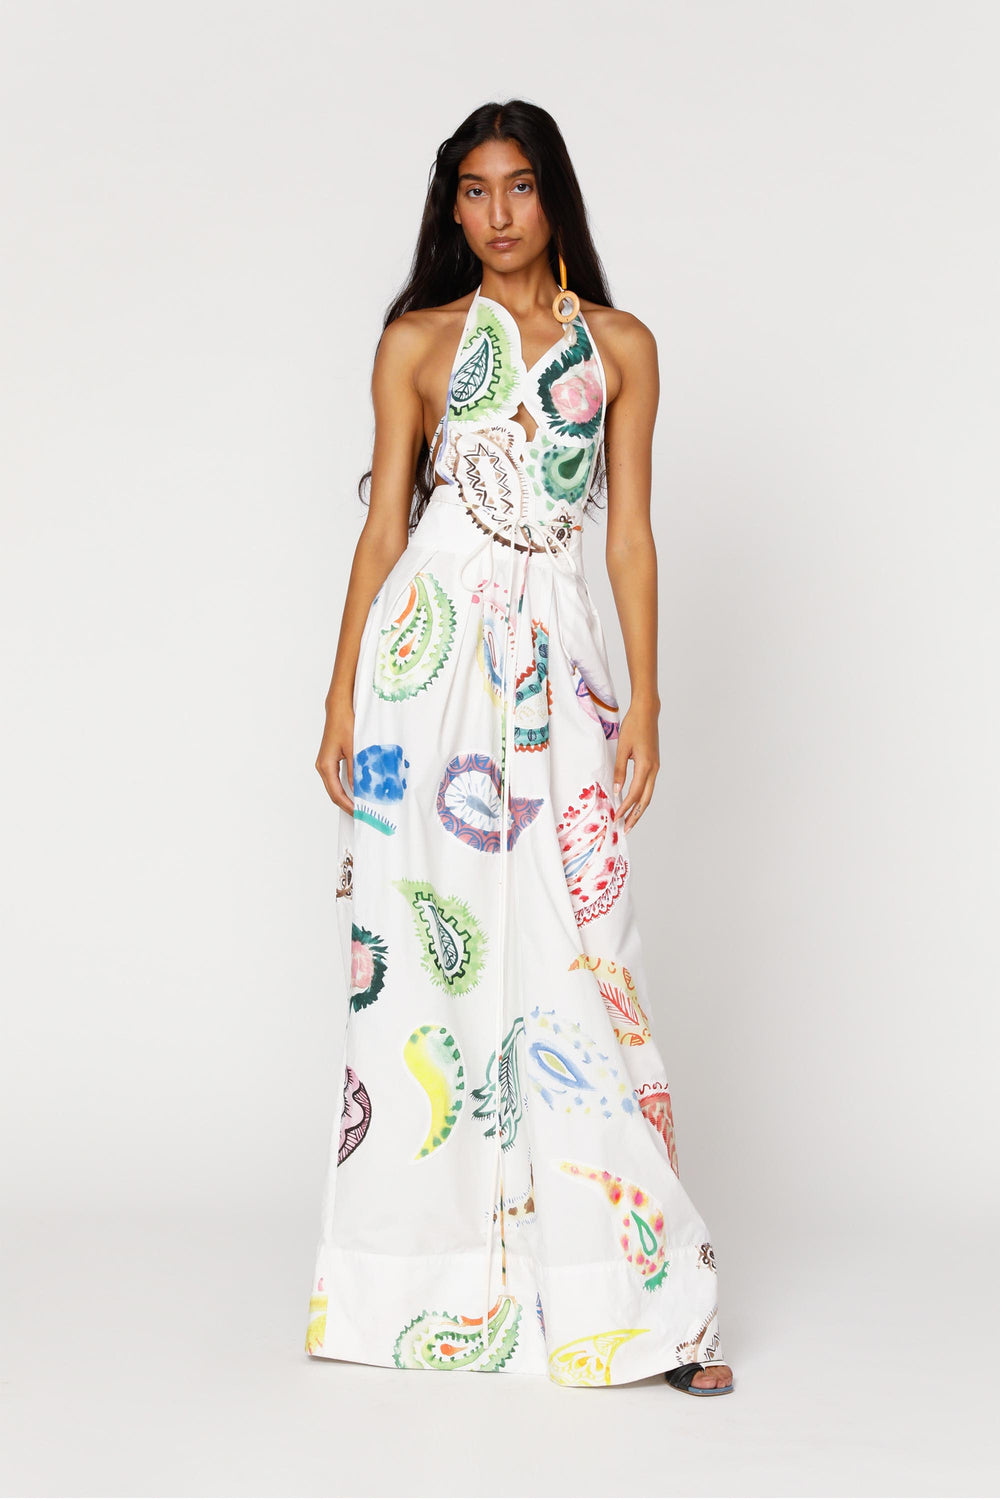 Patched Paisley Halter Dress